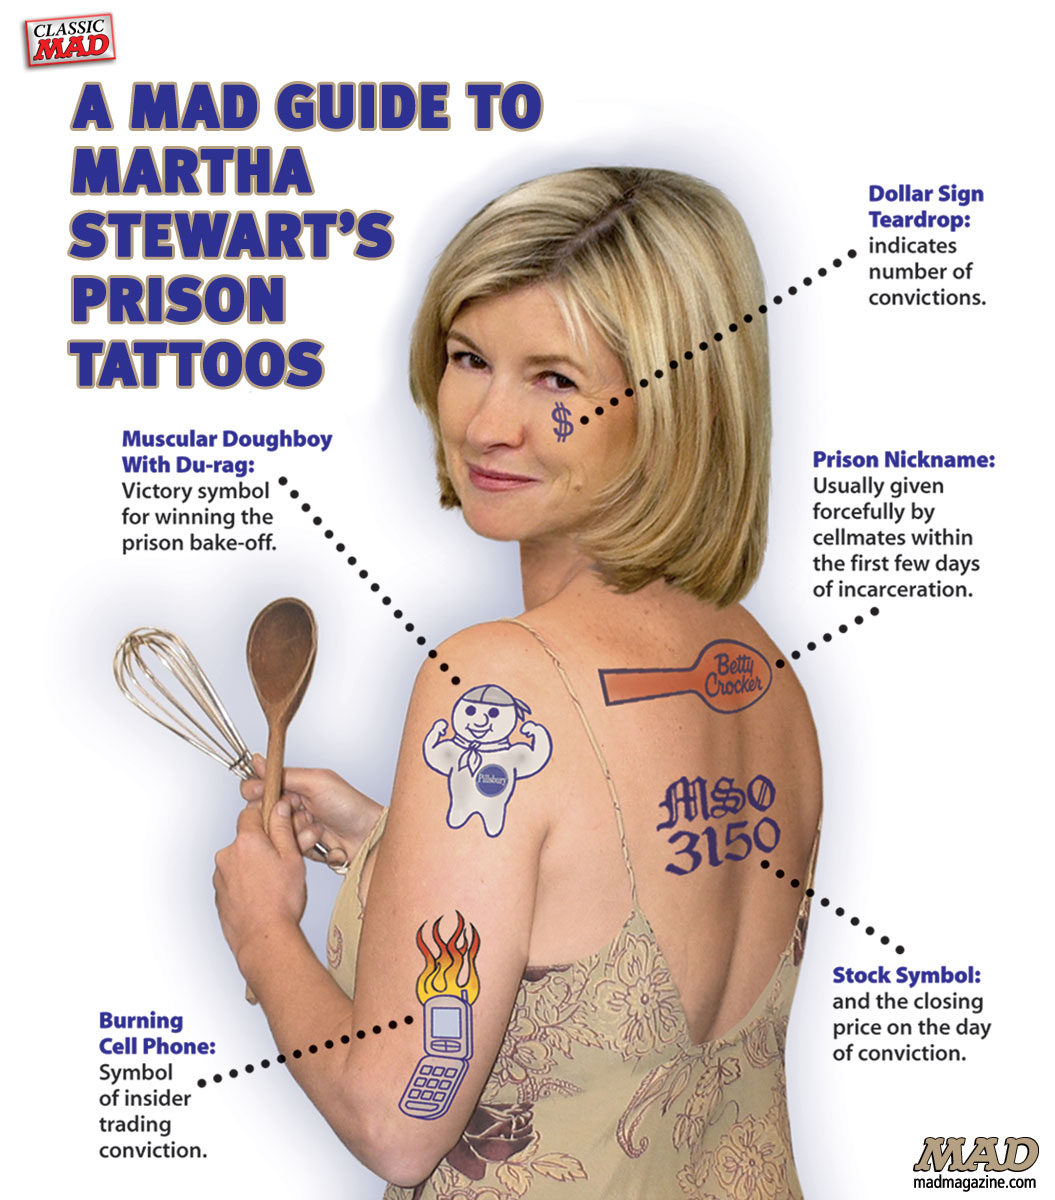 Classic MAD, Martha Stewart, Insider Trading, Prison, ImClone, Tattoos, Groucho Glasses, MAD #455, Fundalini